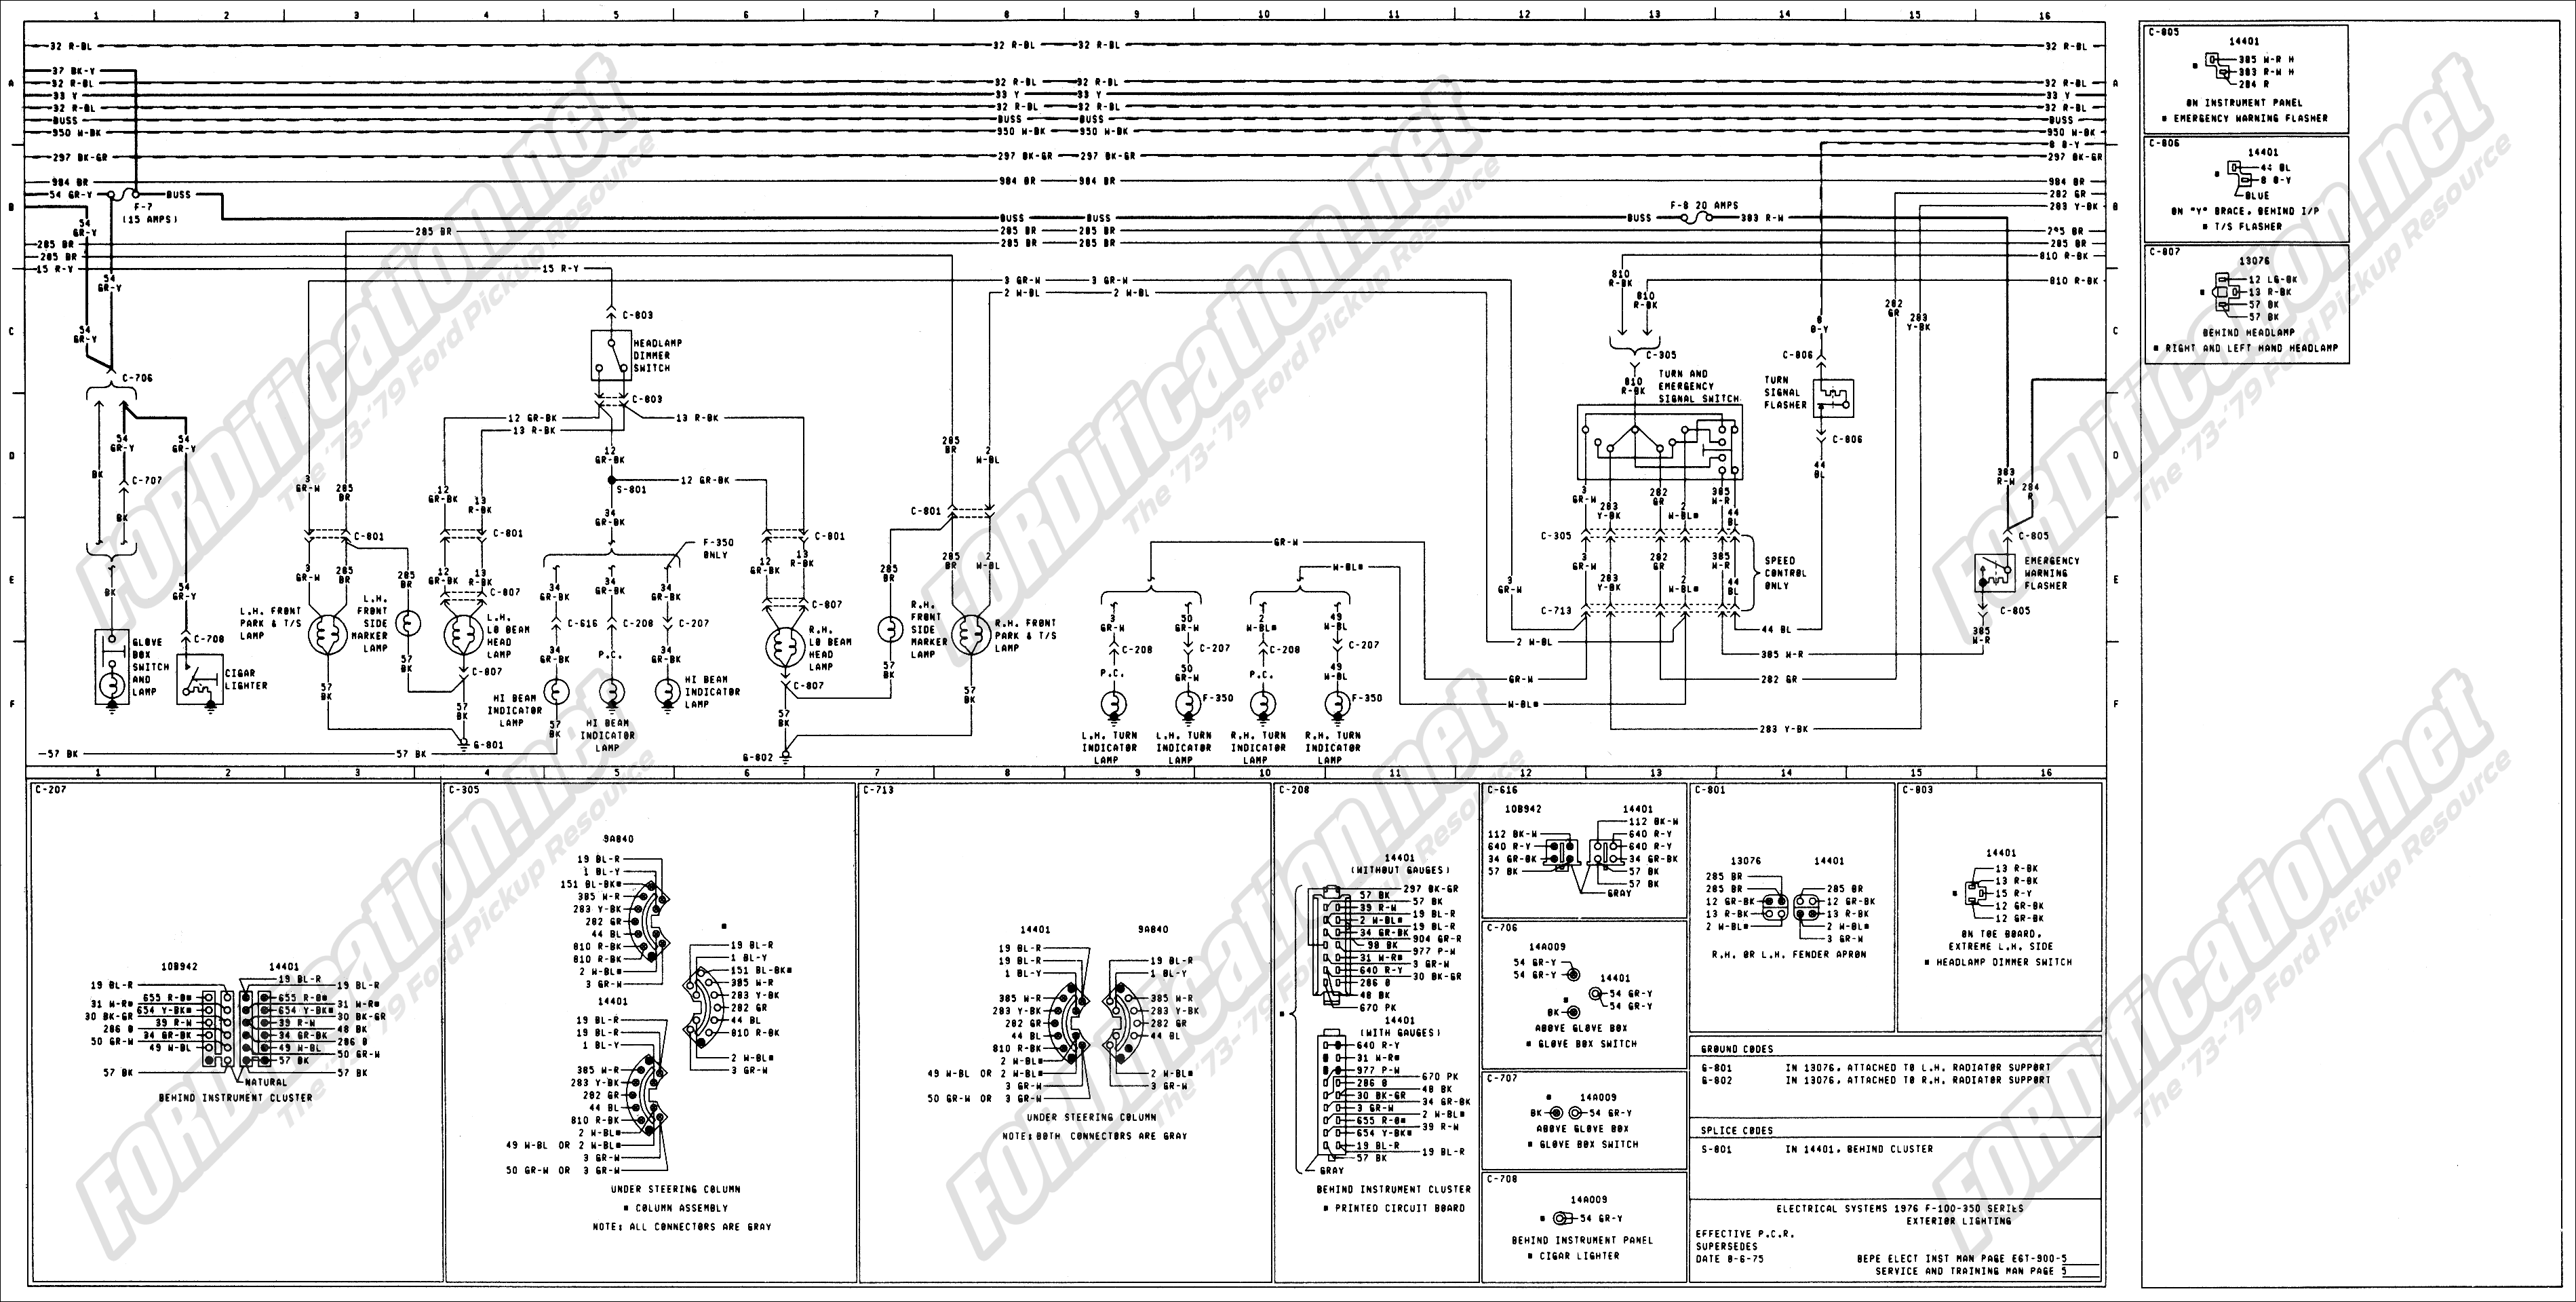 78 Ford F150 Wiring Diagram Simple Electrical 1992 F 150 Wiper Motor 1973 1979 Truck Diagrams Schematics Fordification Net 2000 Chassis